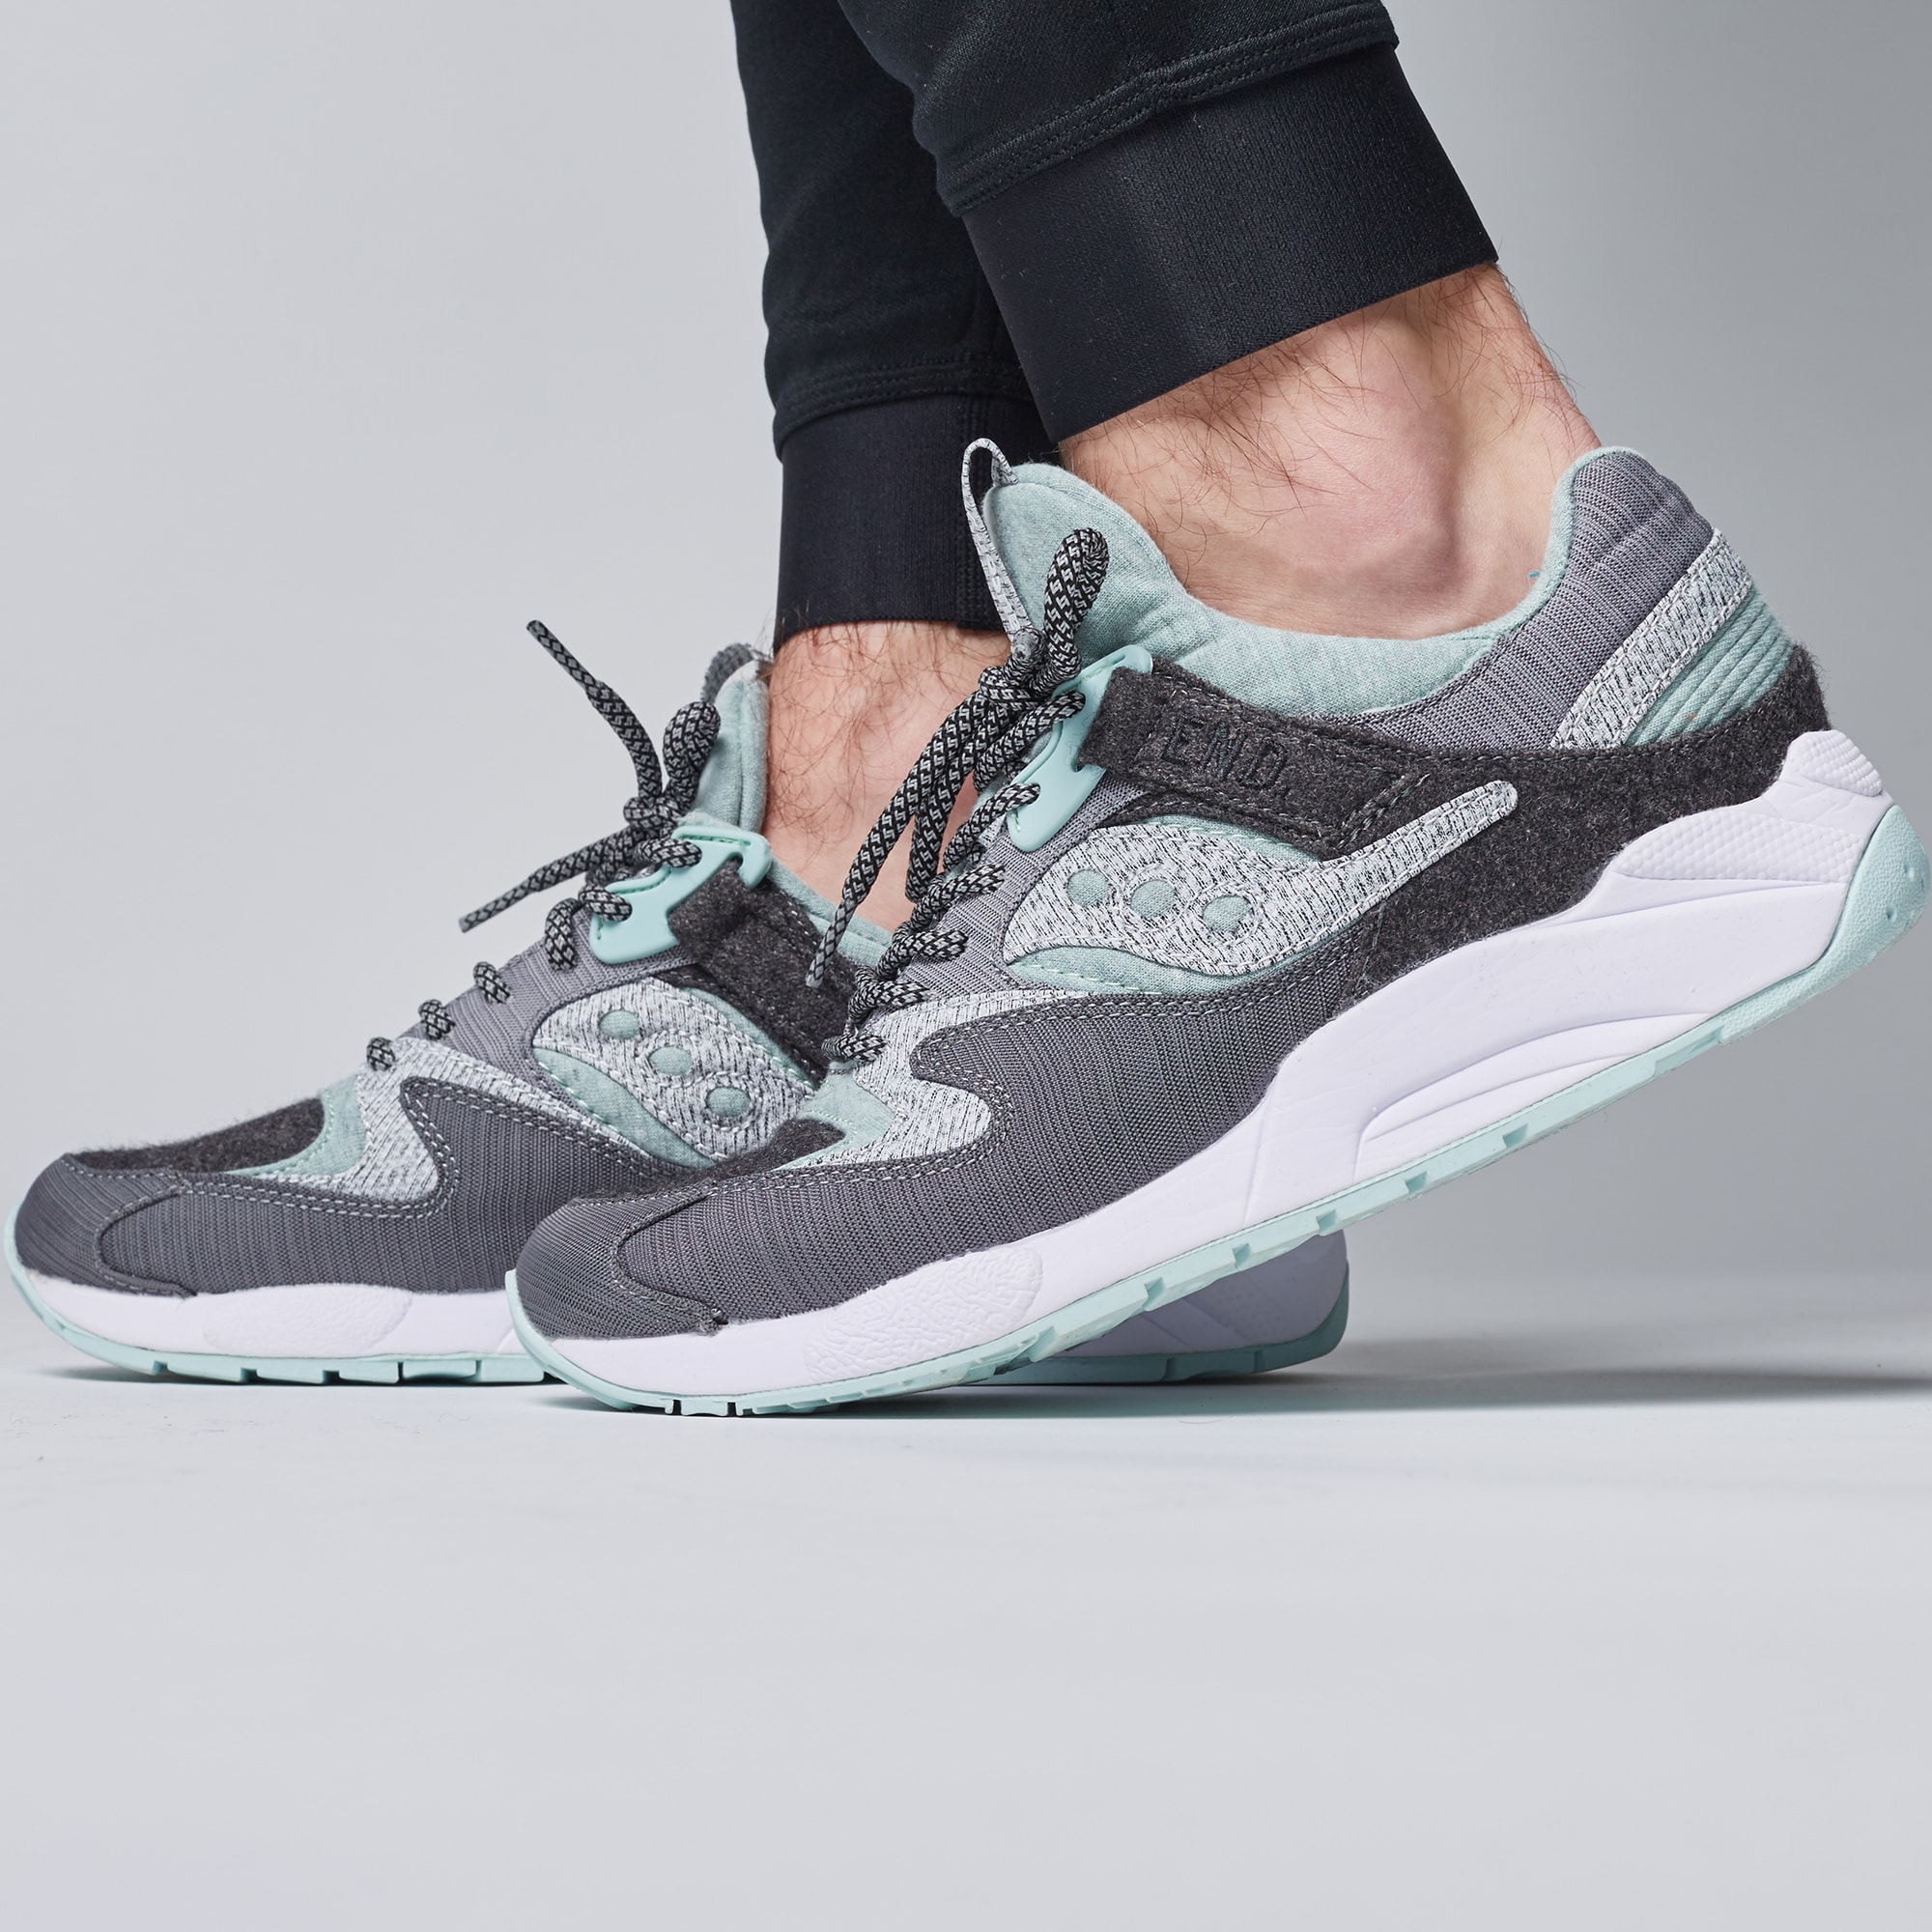 1ab60d8645f3 END. x Saucony Grid 9000  White Noise  Grey   White